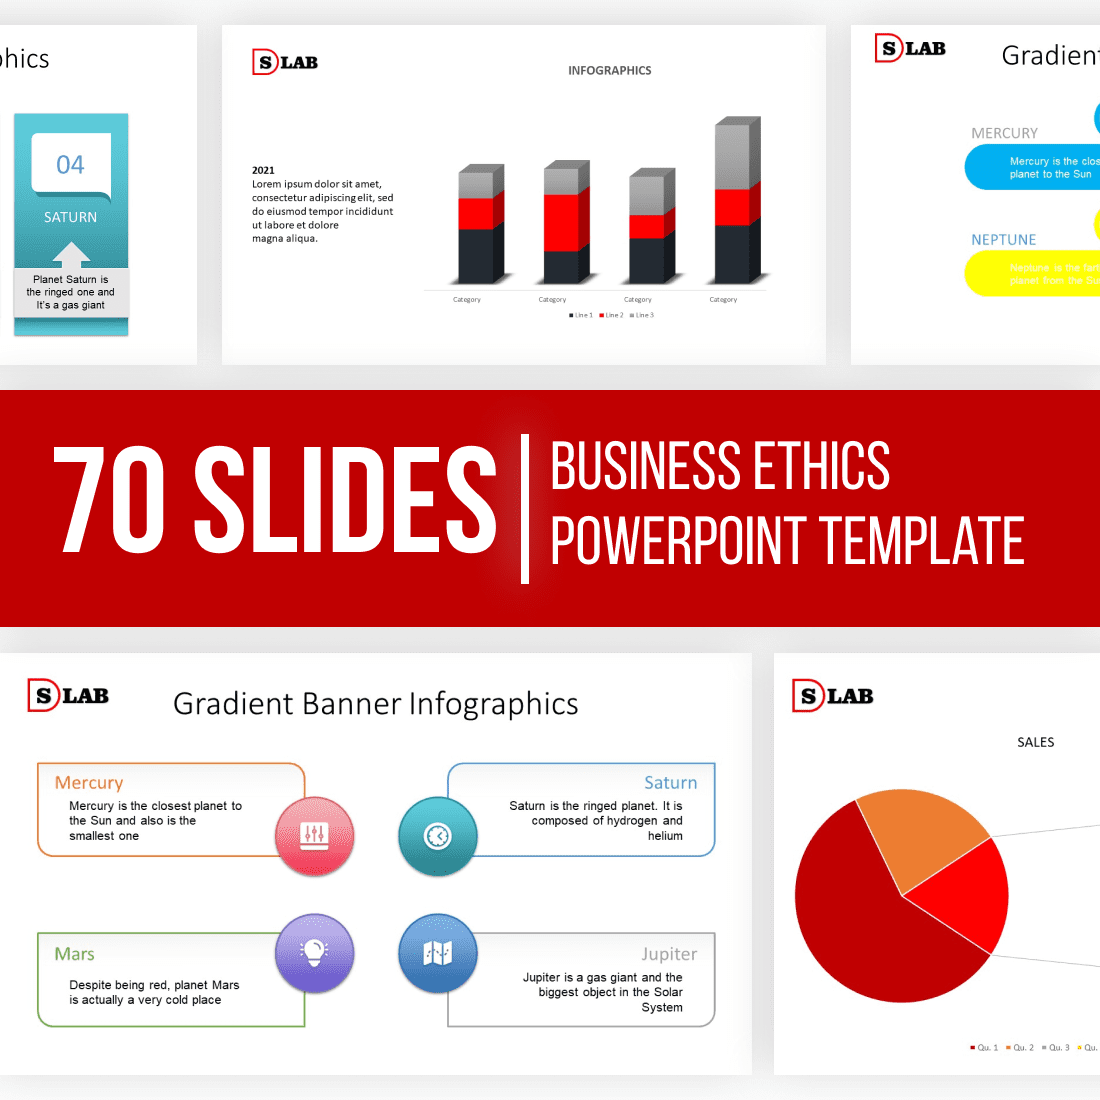 40+ Best Sales PowerPoint Templates in 2021: Free and Premium